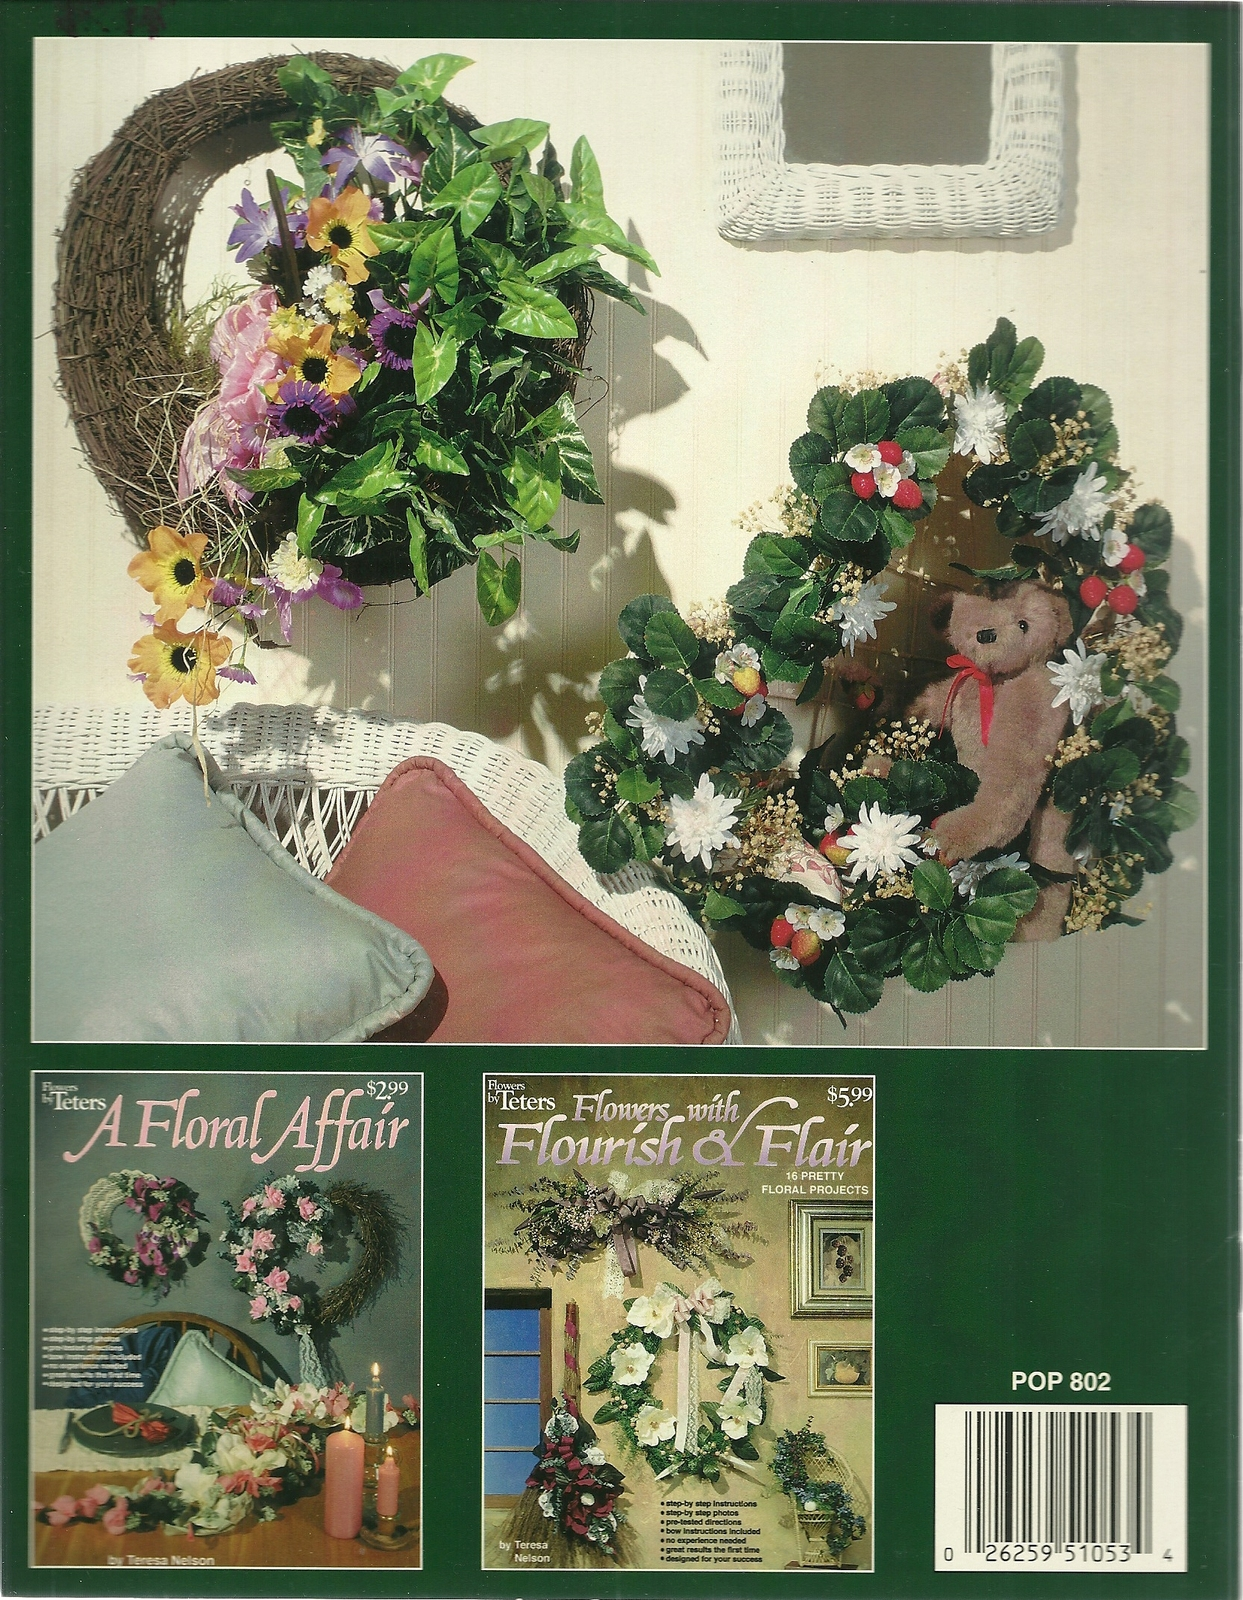 Bountiful Blossoms Flowers by Teters Floral Craft Book POP 802